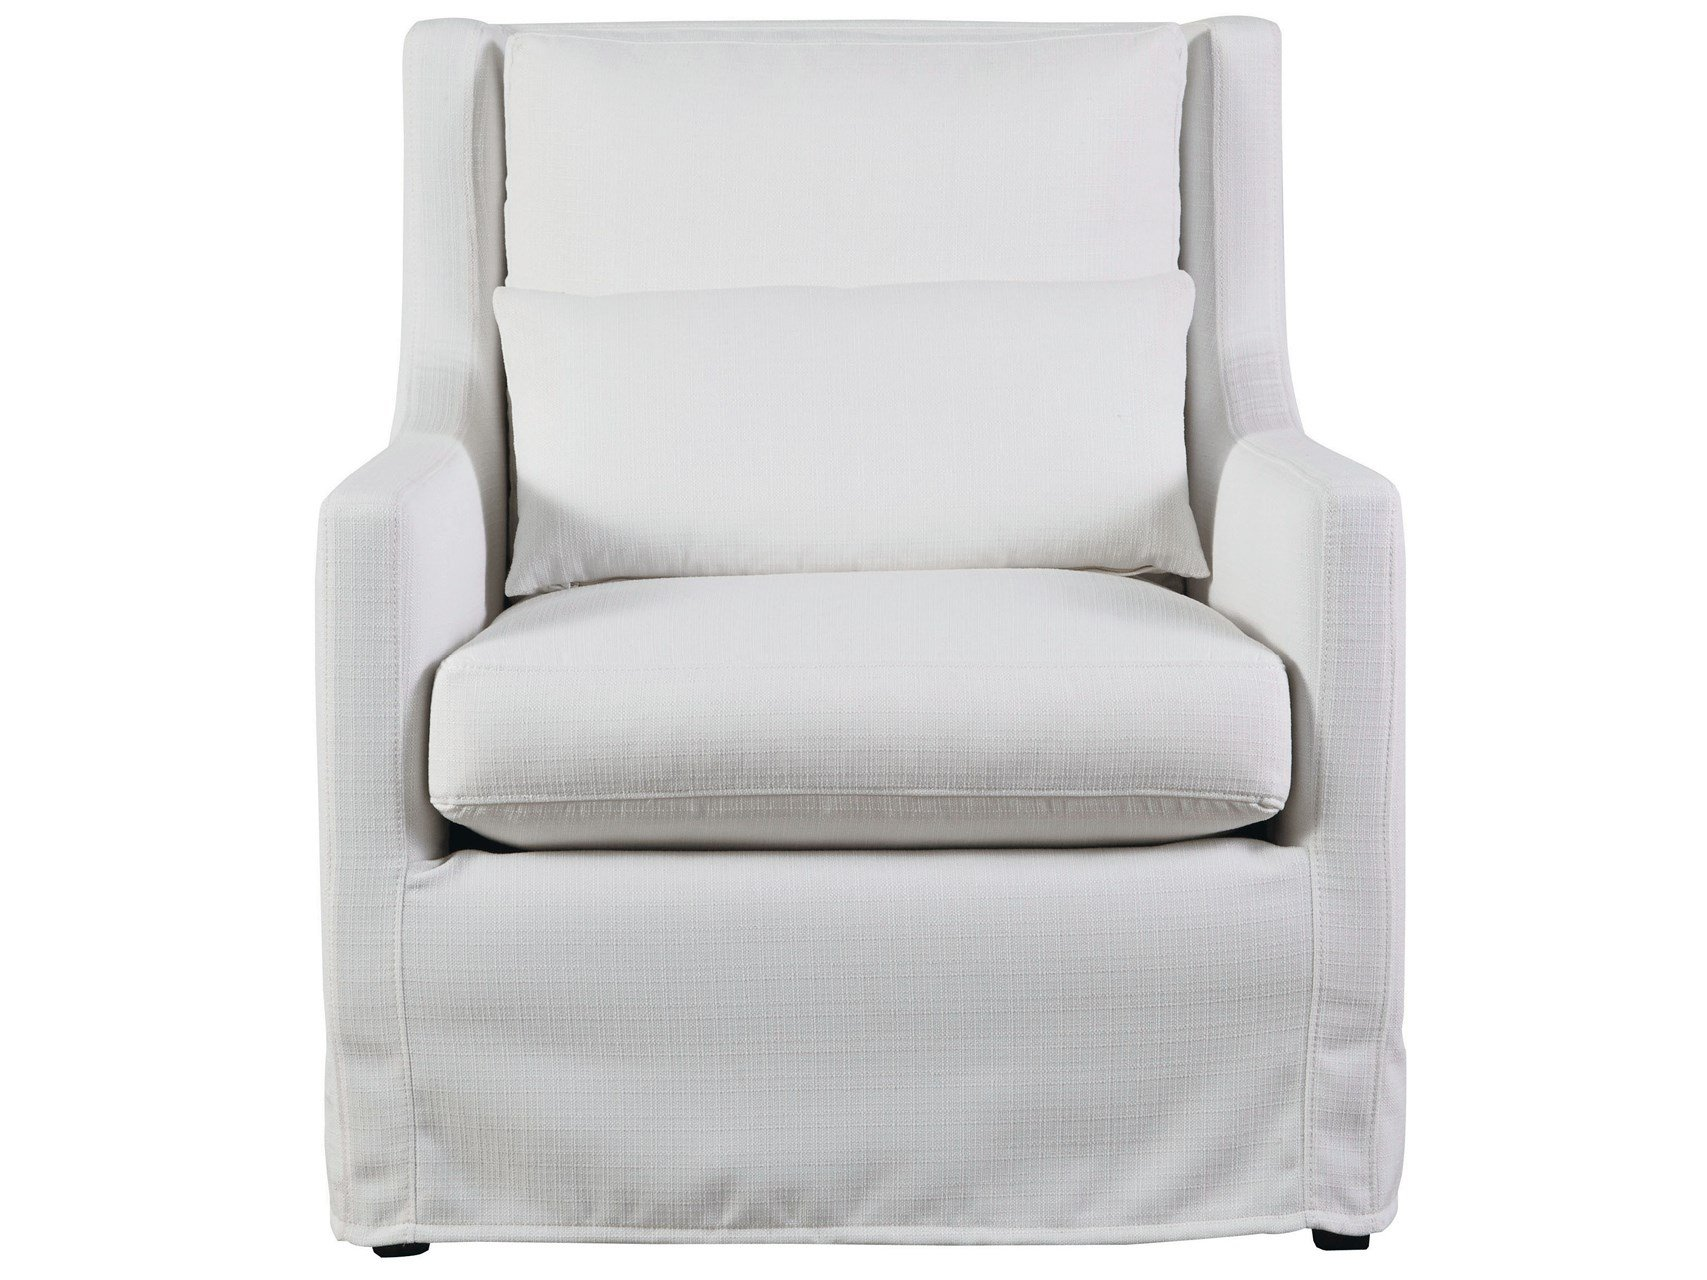 Sloane Chair - Special Order